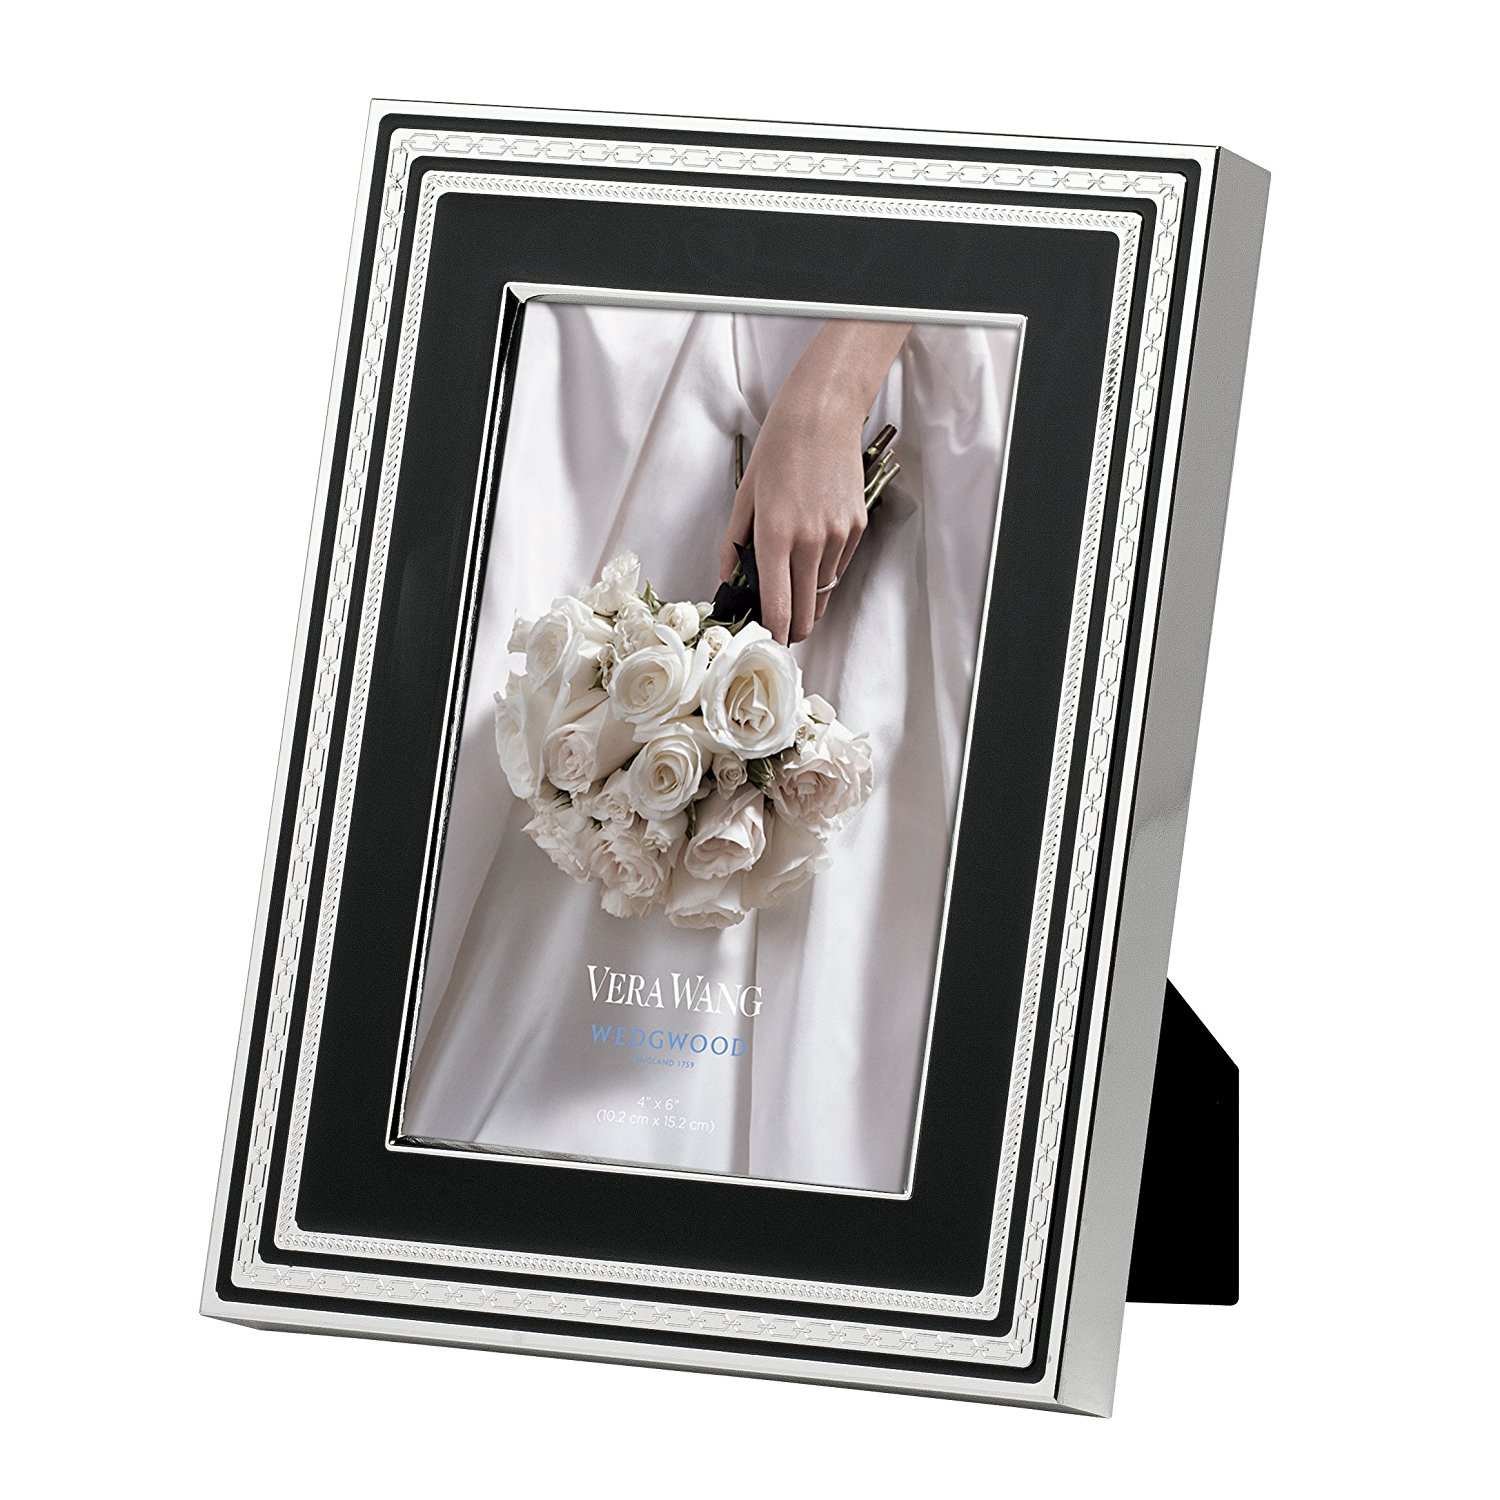 "Wedgwood by Vera Wang With Love Frame - Noir - 4"" x 6"""